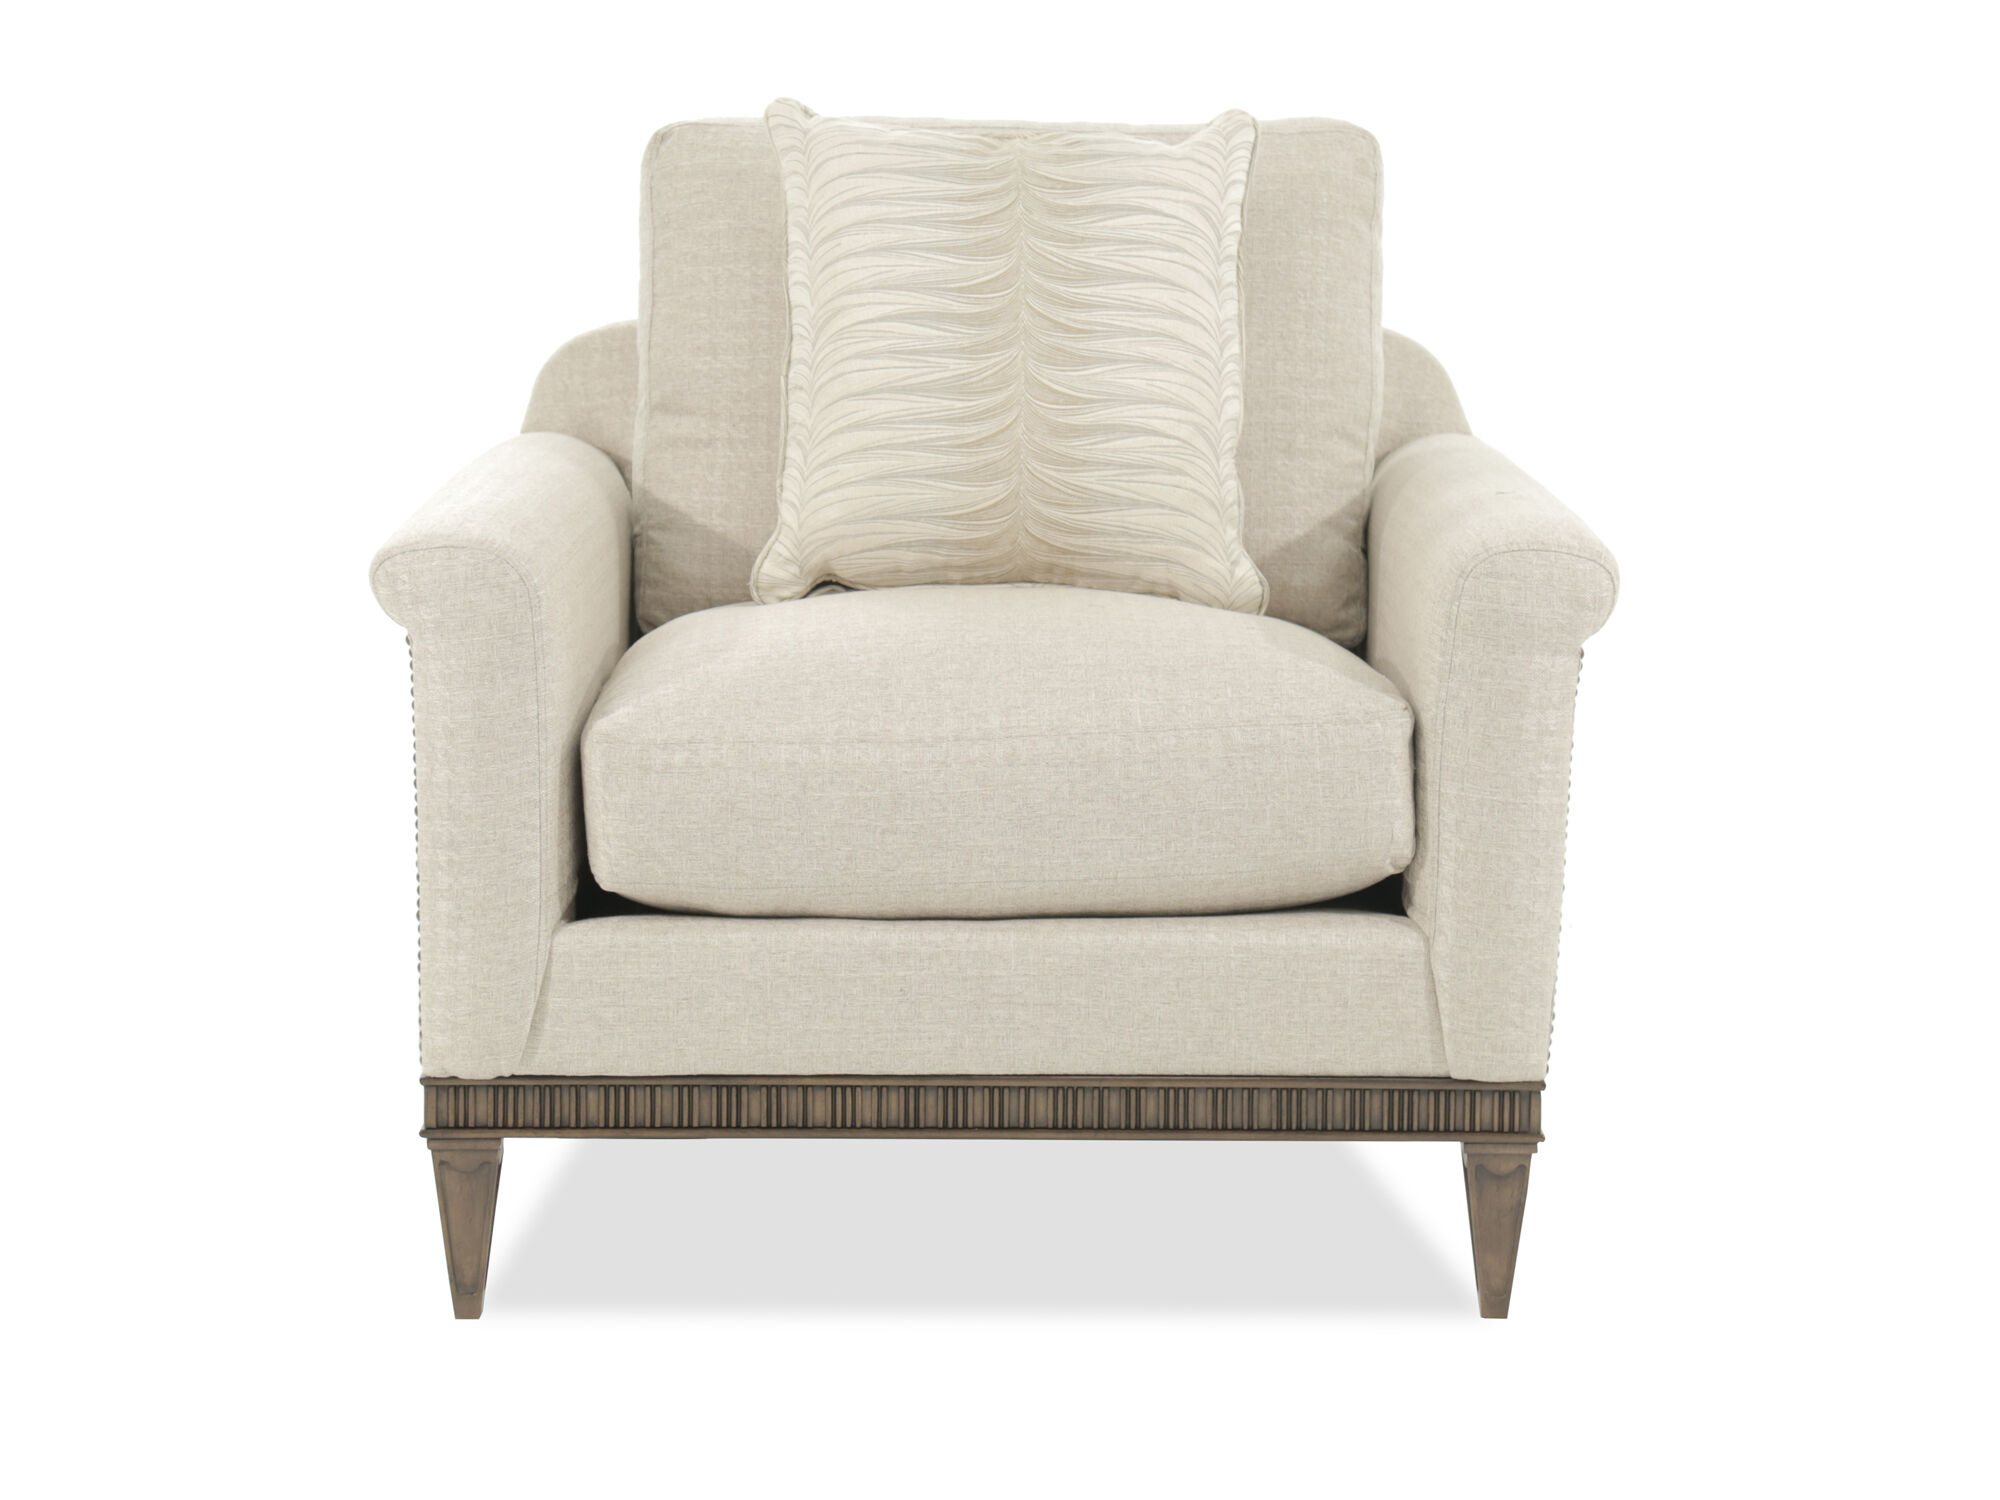 Broyhill Cashmera Beige Luxe Chair and a half  Mathis